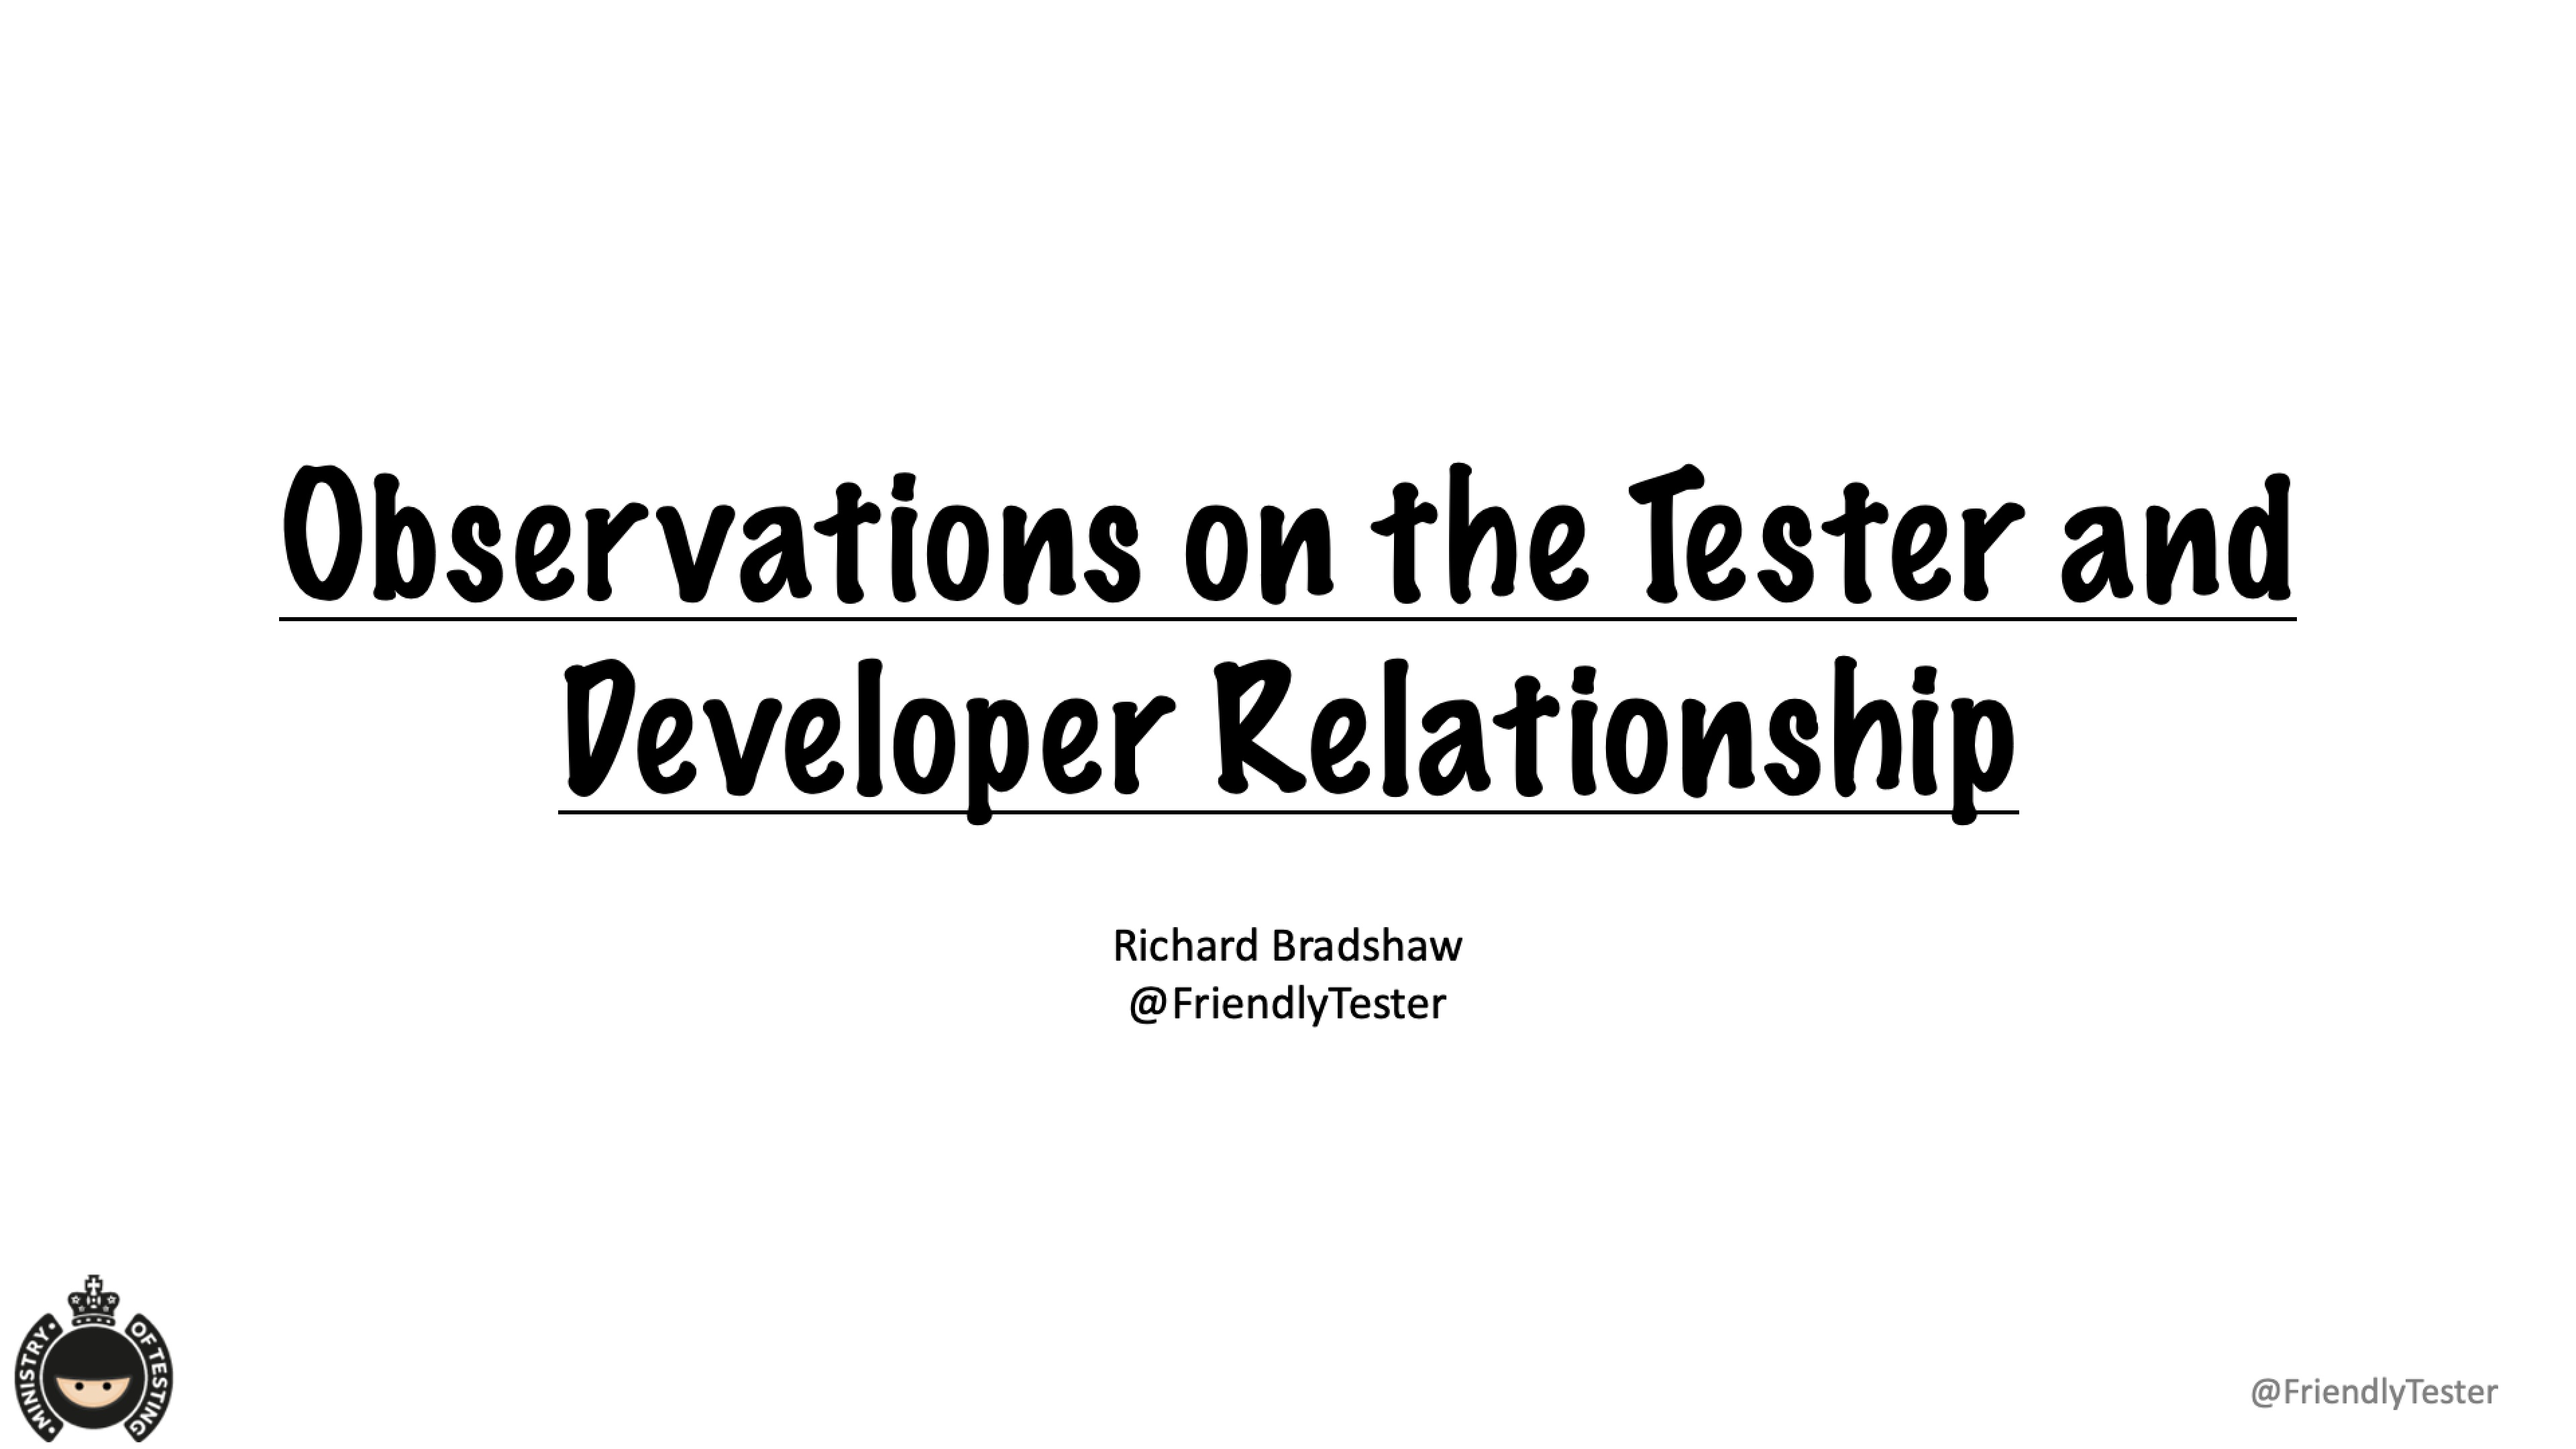 Observations on the Tester and Developer Relationship with Richard Bradshaw